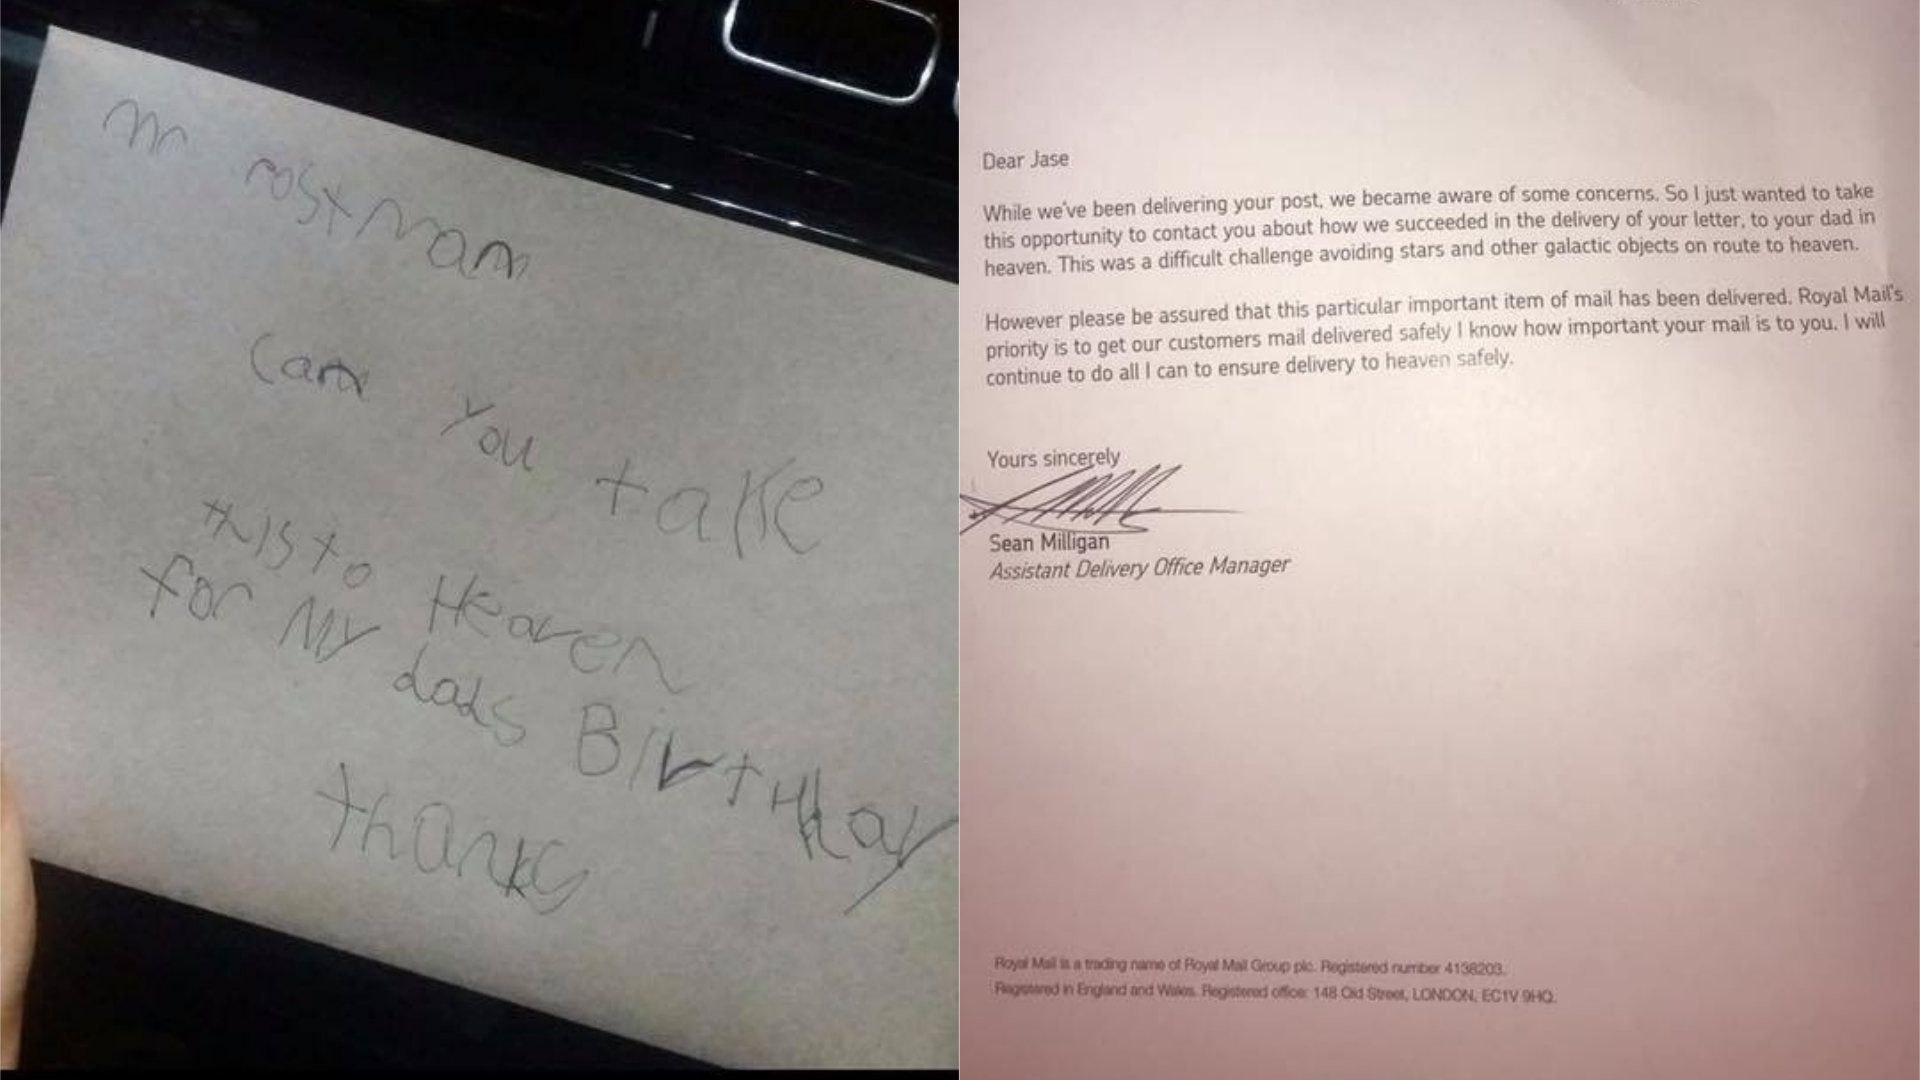 Boy Sends Card to Dad in Heaven, Gets Reply